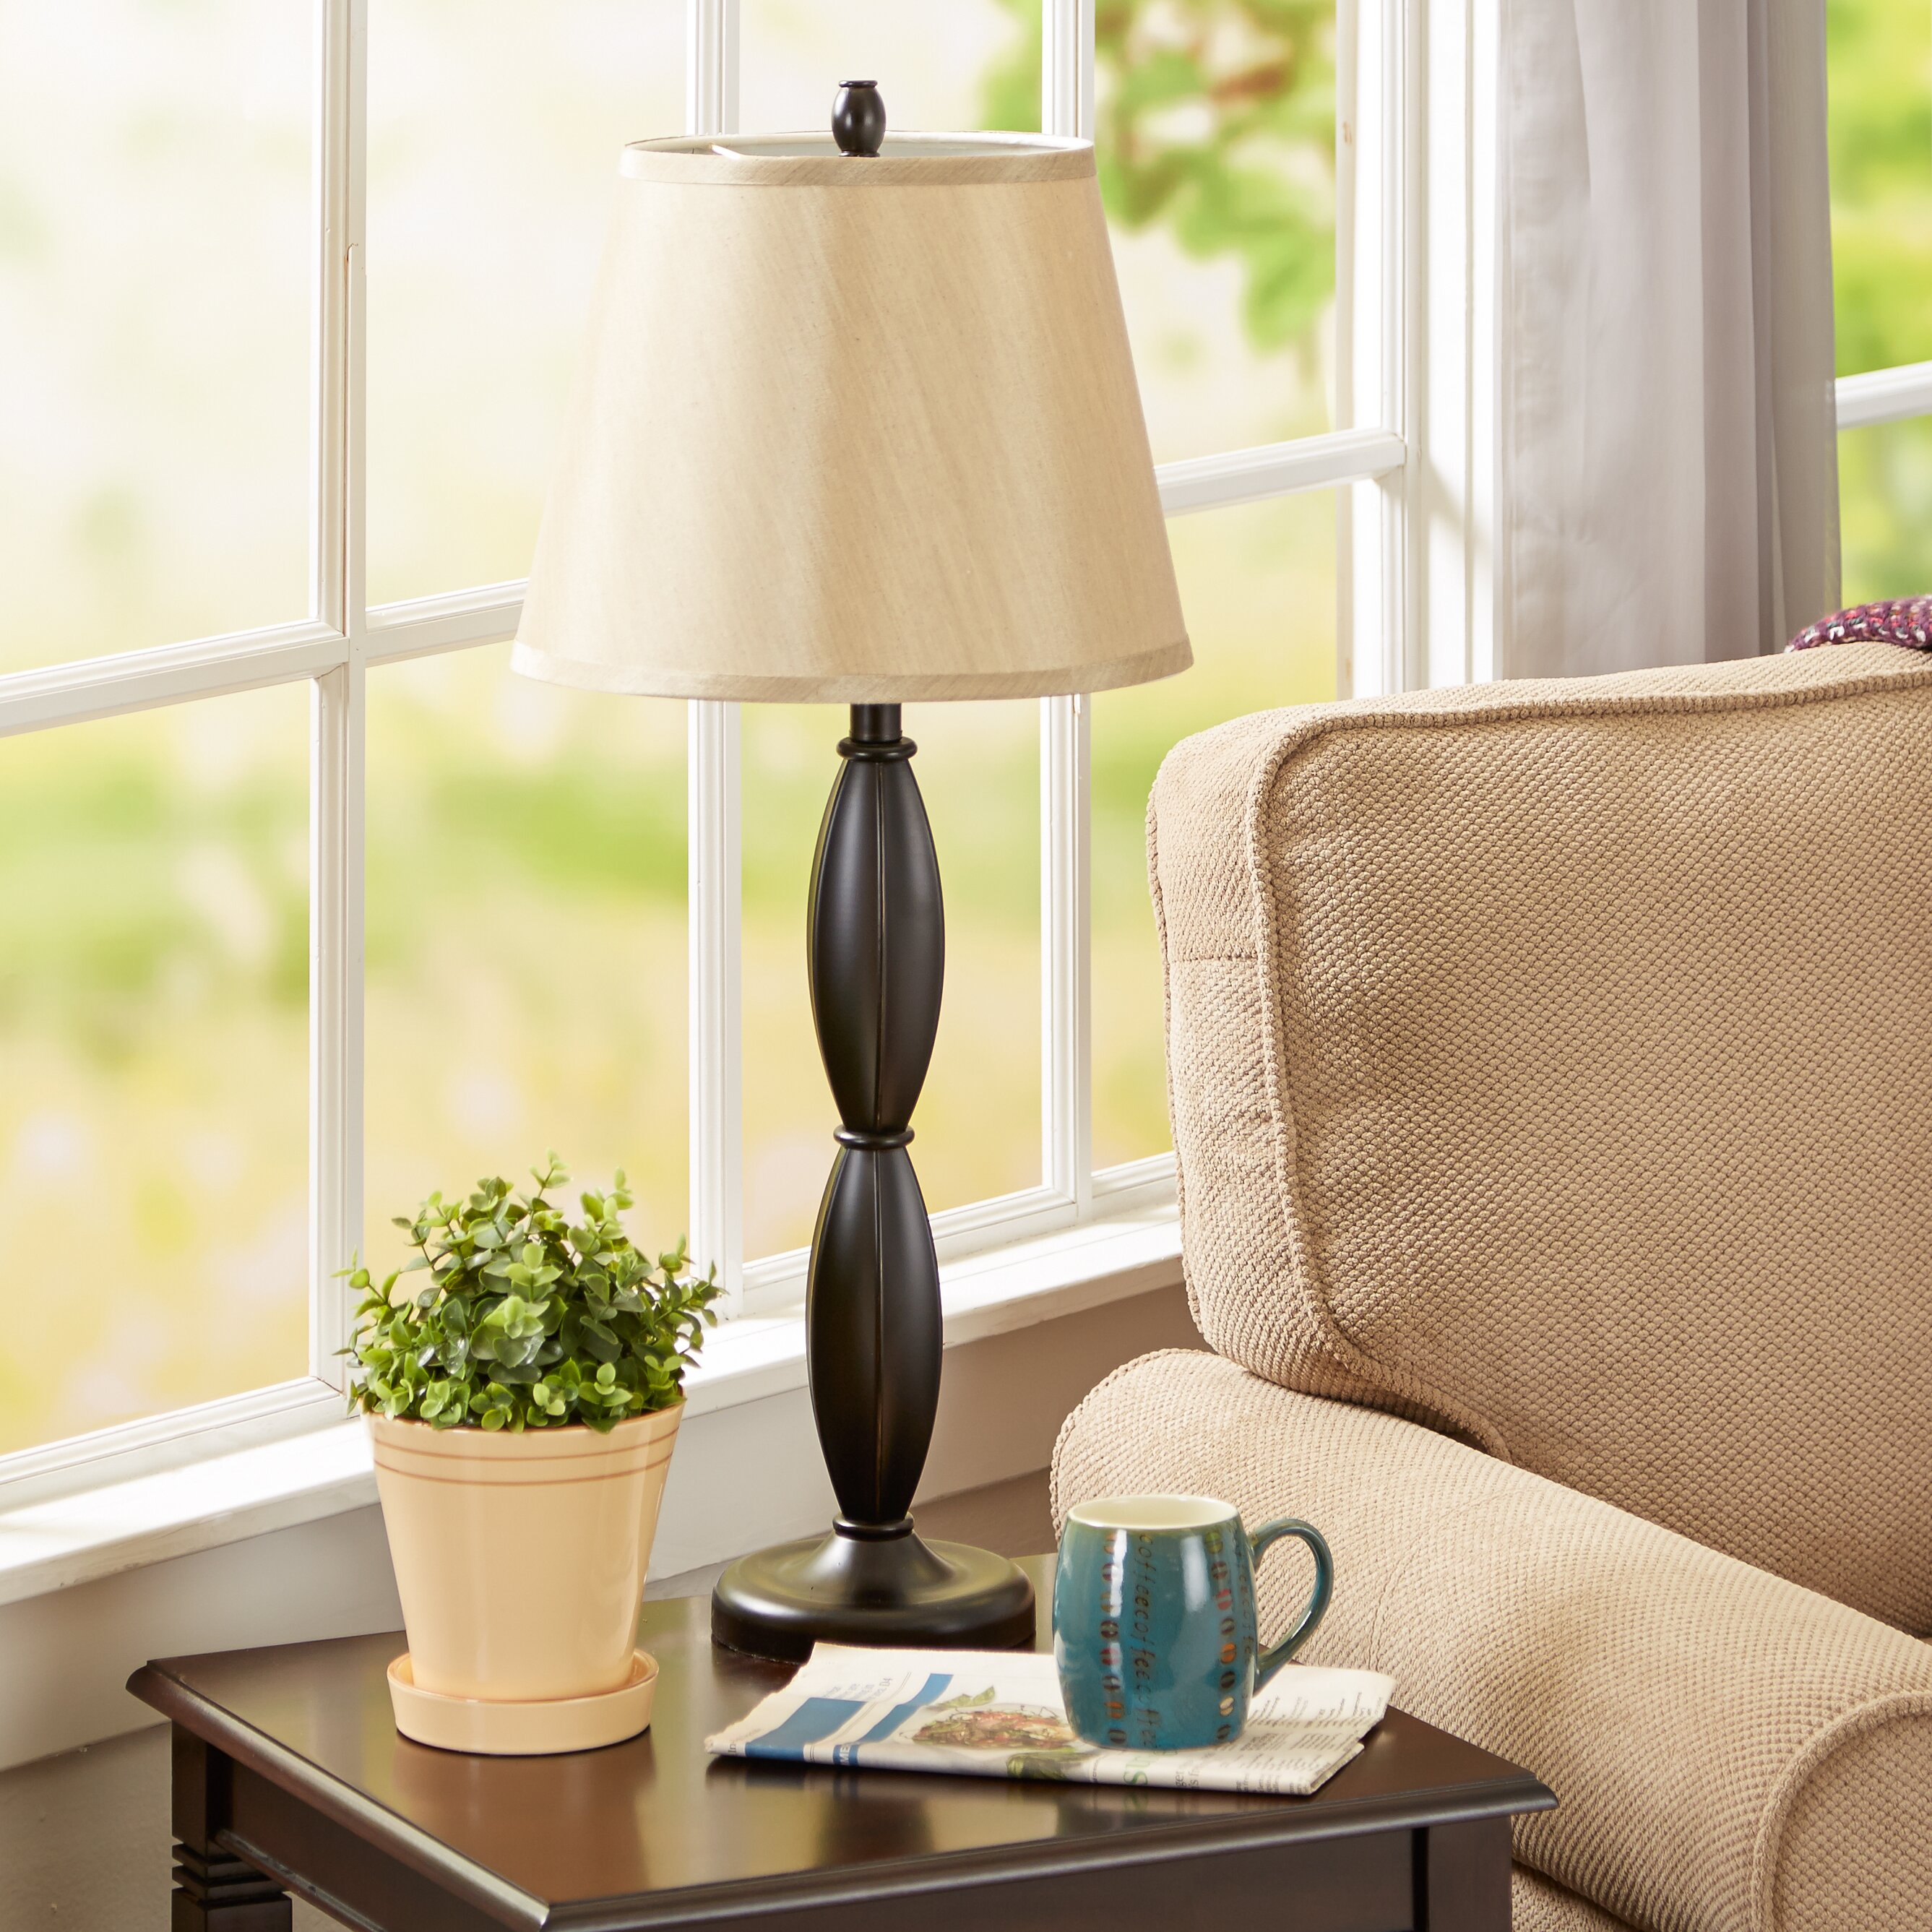 Living room table lamp sets